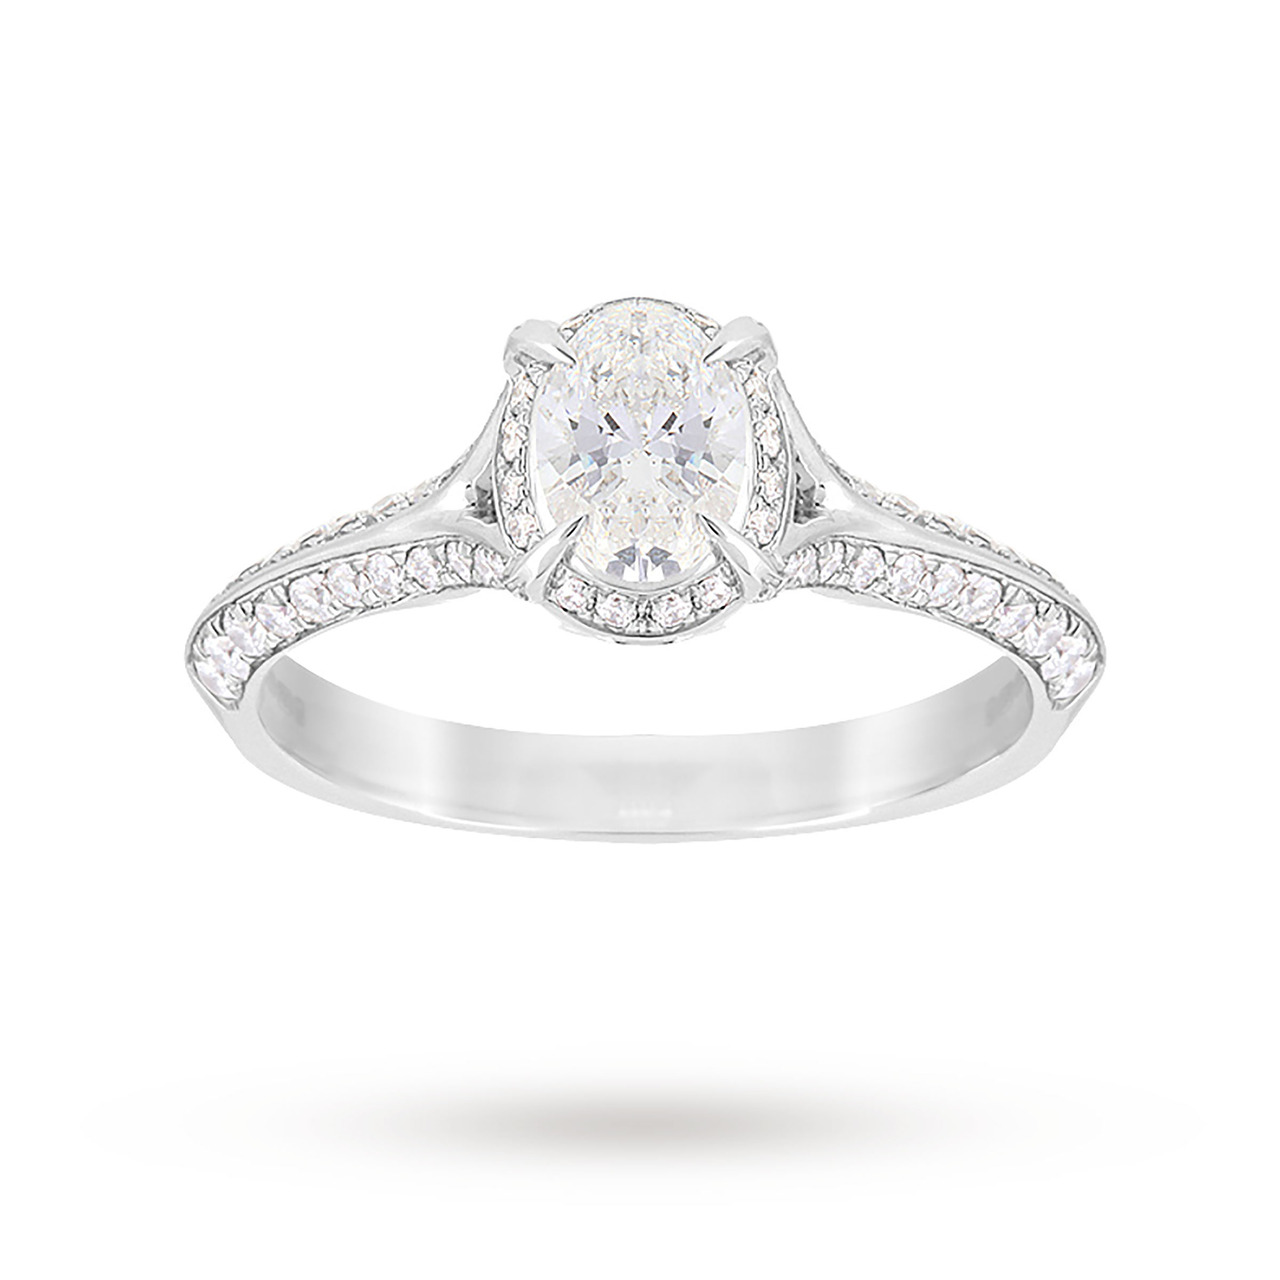 Jenny Packham Oval Cut 1.10 Carat Total Weight Solitaire Diamond Ring in Platinum